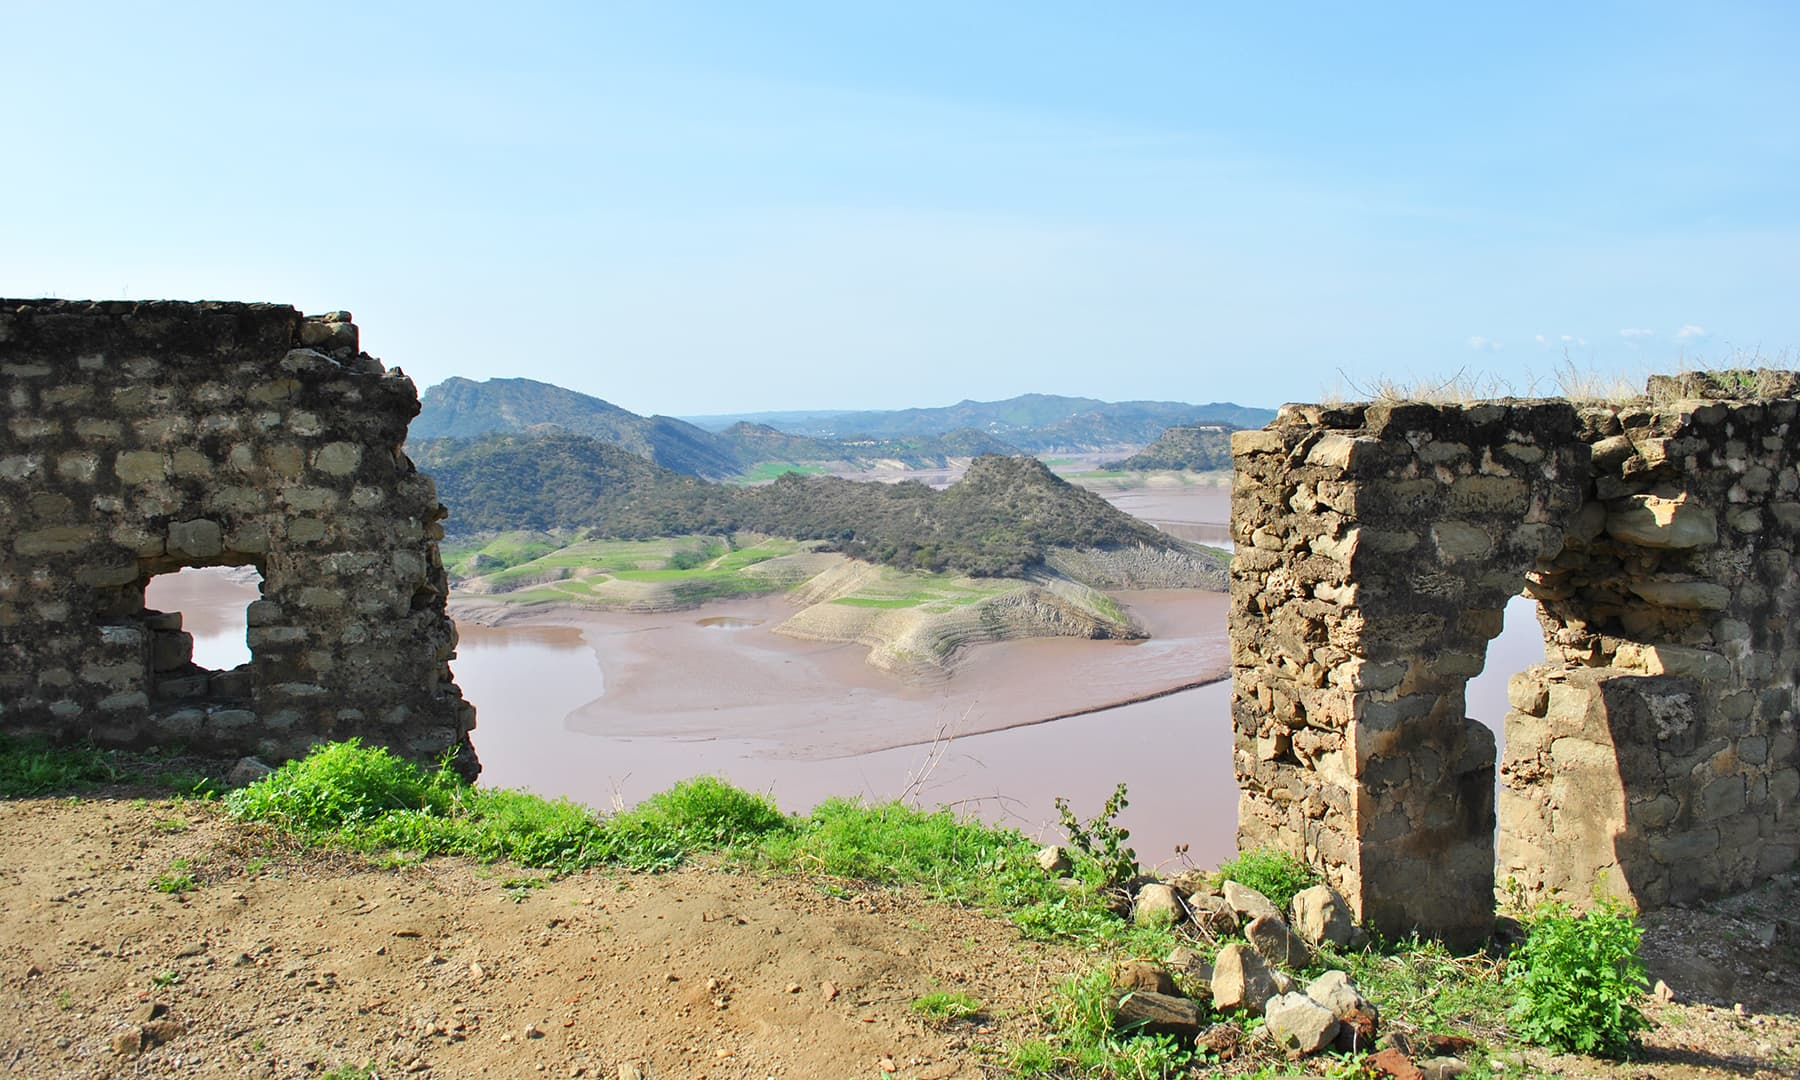 Looking over Mangla Lake, Ramkot Fort has the potential of becoming a great tourists attraction once it is fully restored.